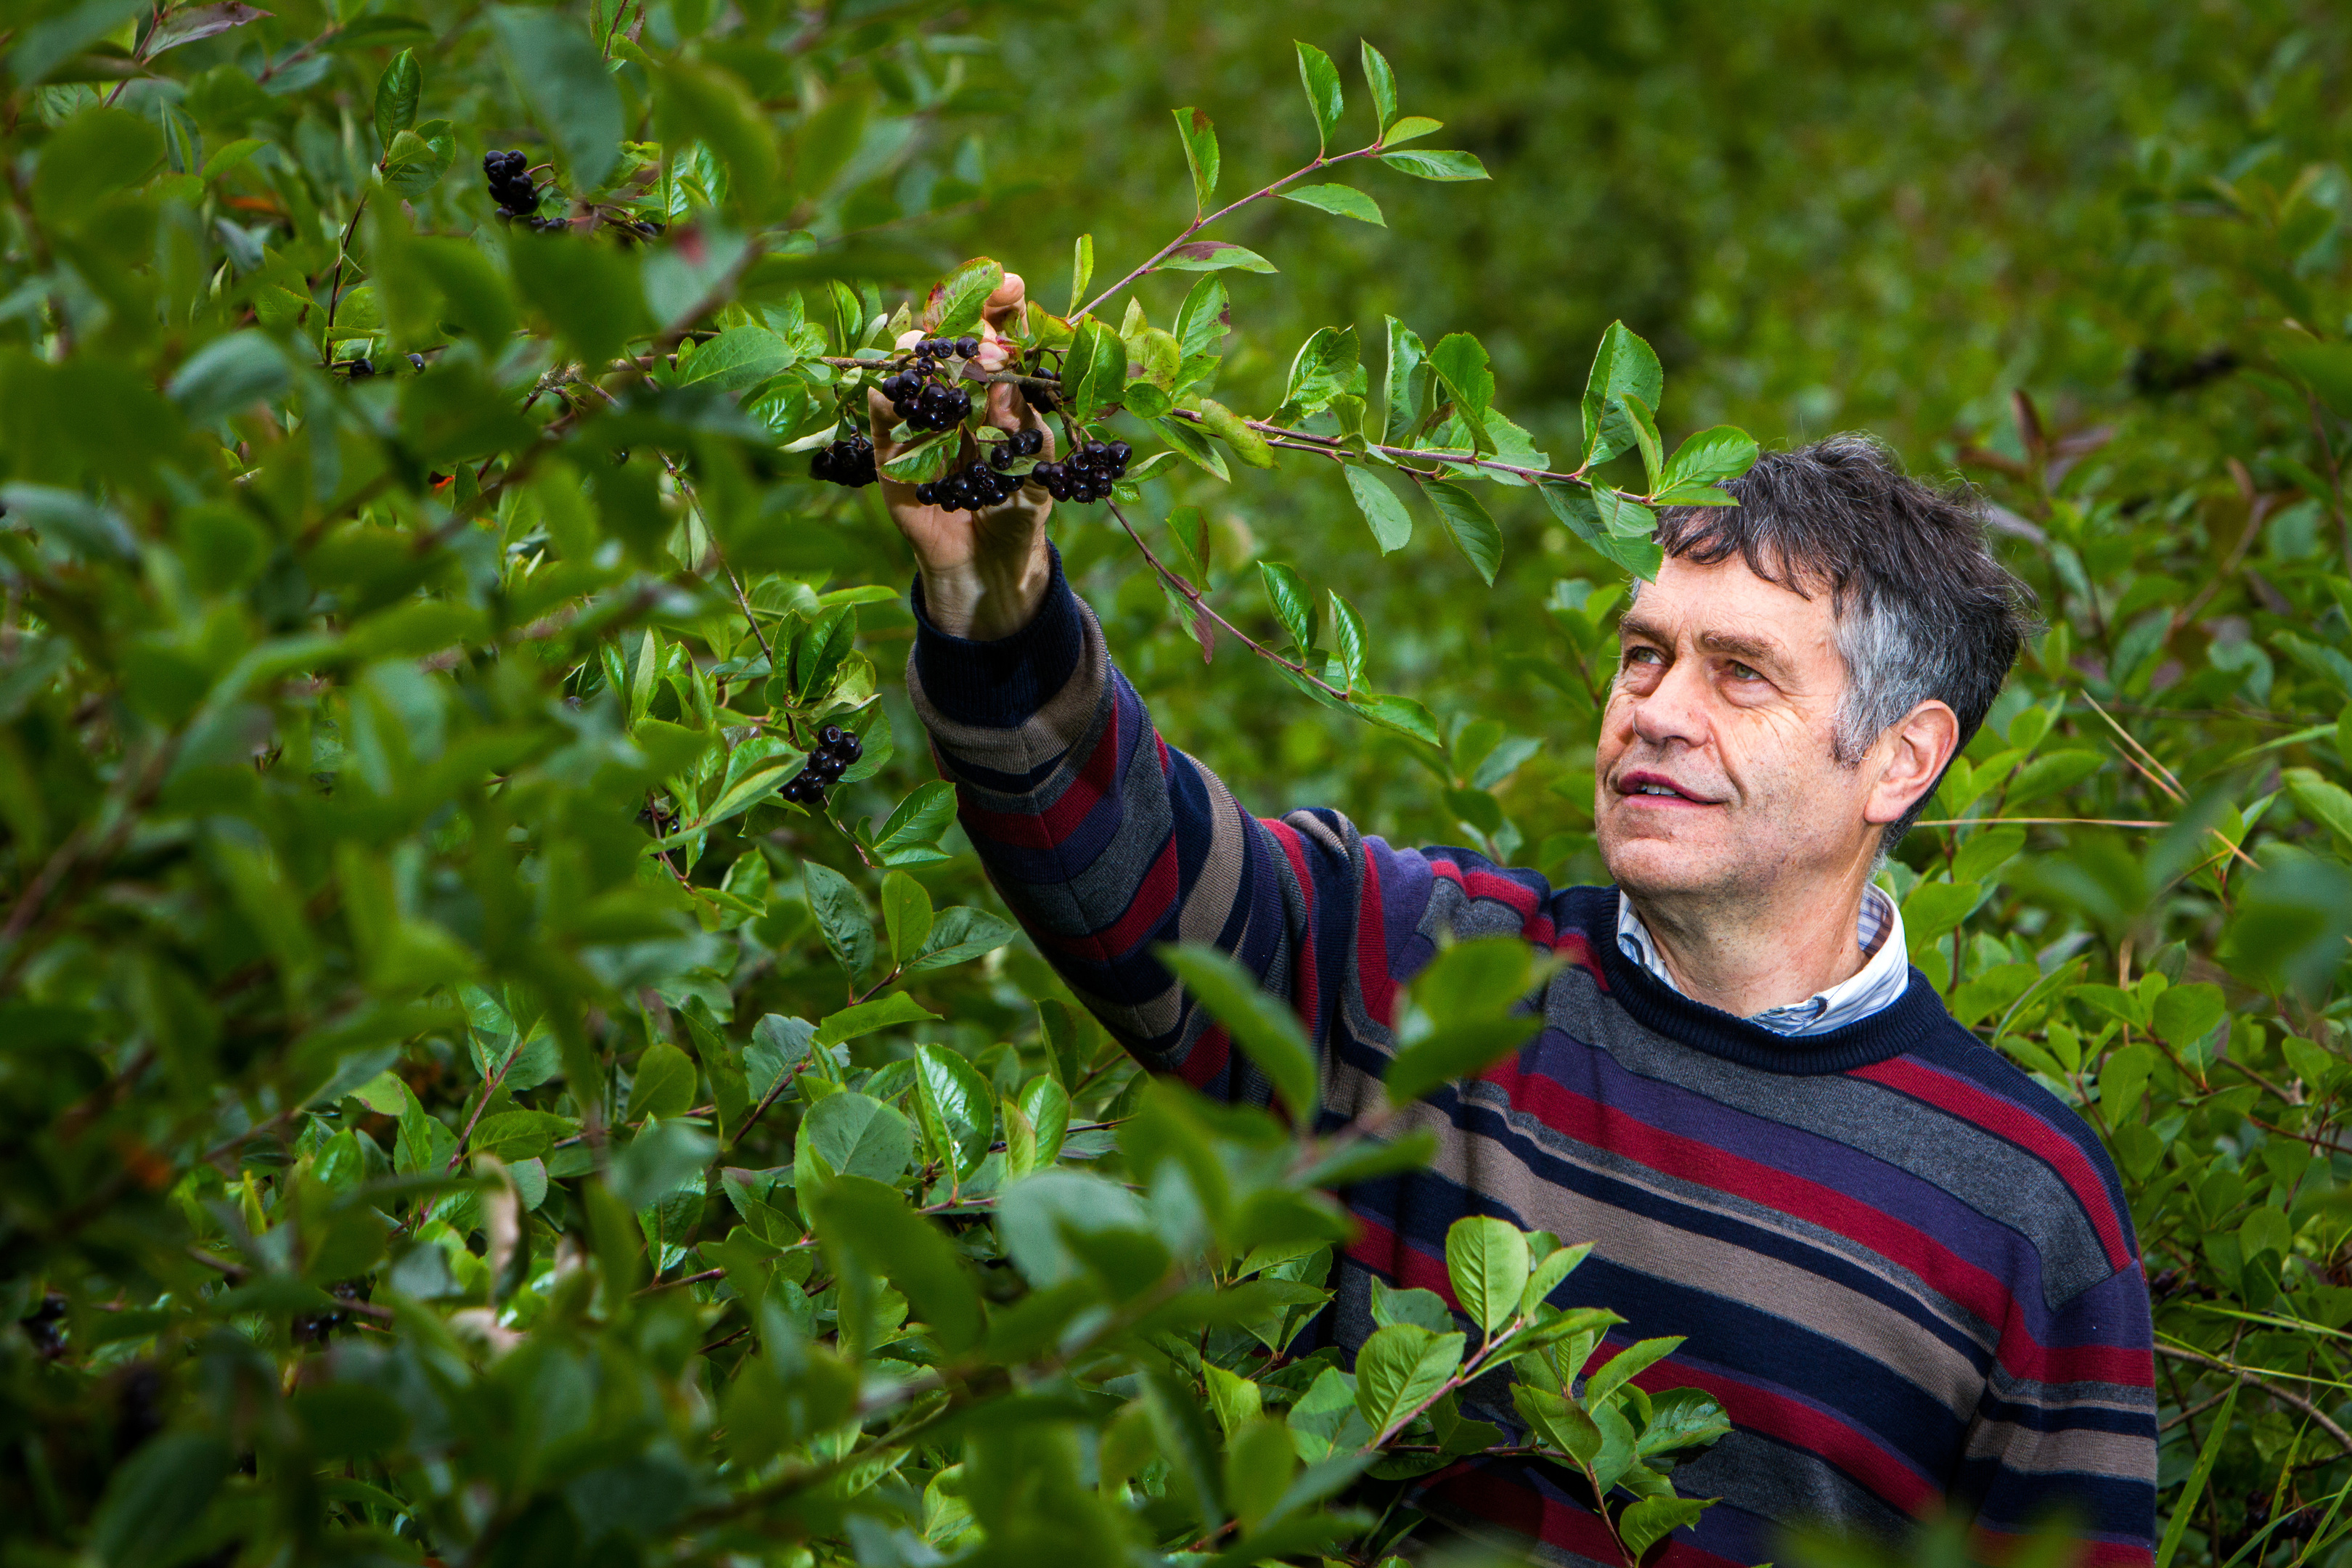 Scottish fruit farmers like Peter Thomson rely on overseas workers